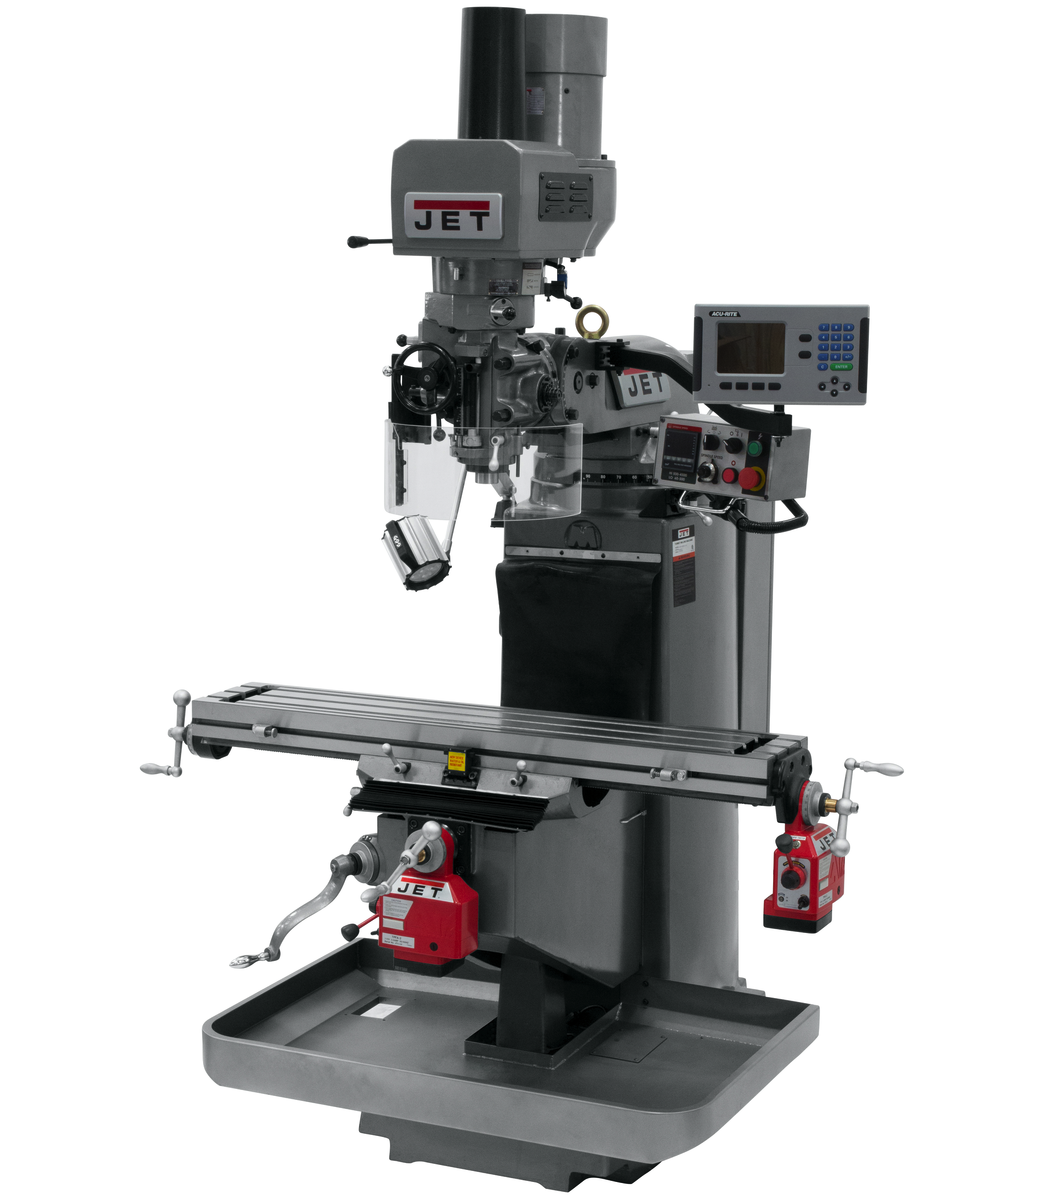 JTM-949EVS Mill With 3-Axis Acu-Rite 203 DRO (Knee) With X and Y-Axis Powerfeeds and Air Powered Draw Bar